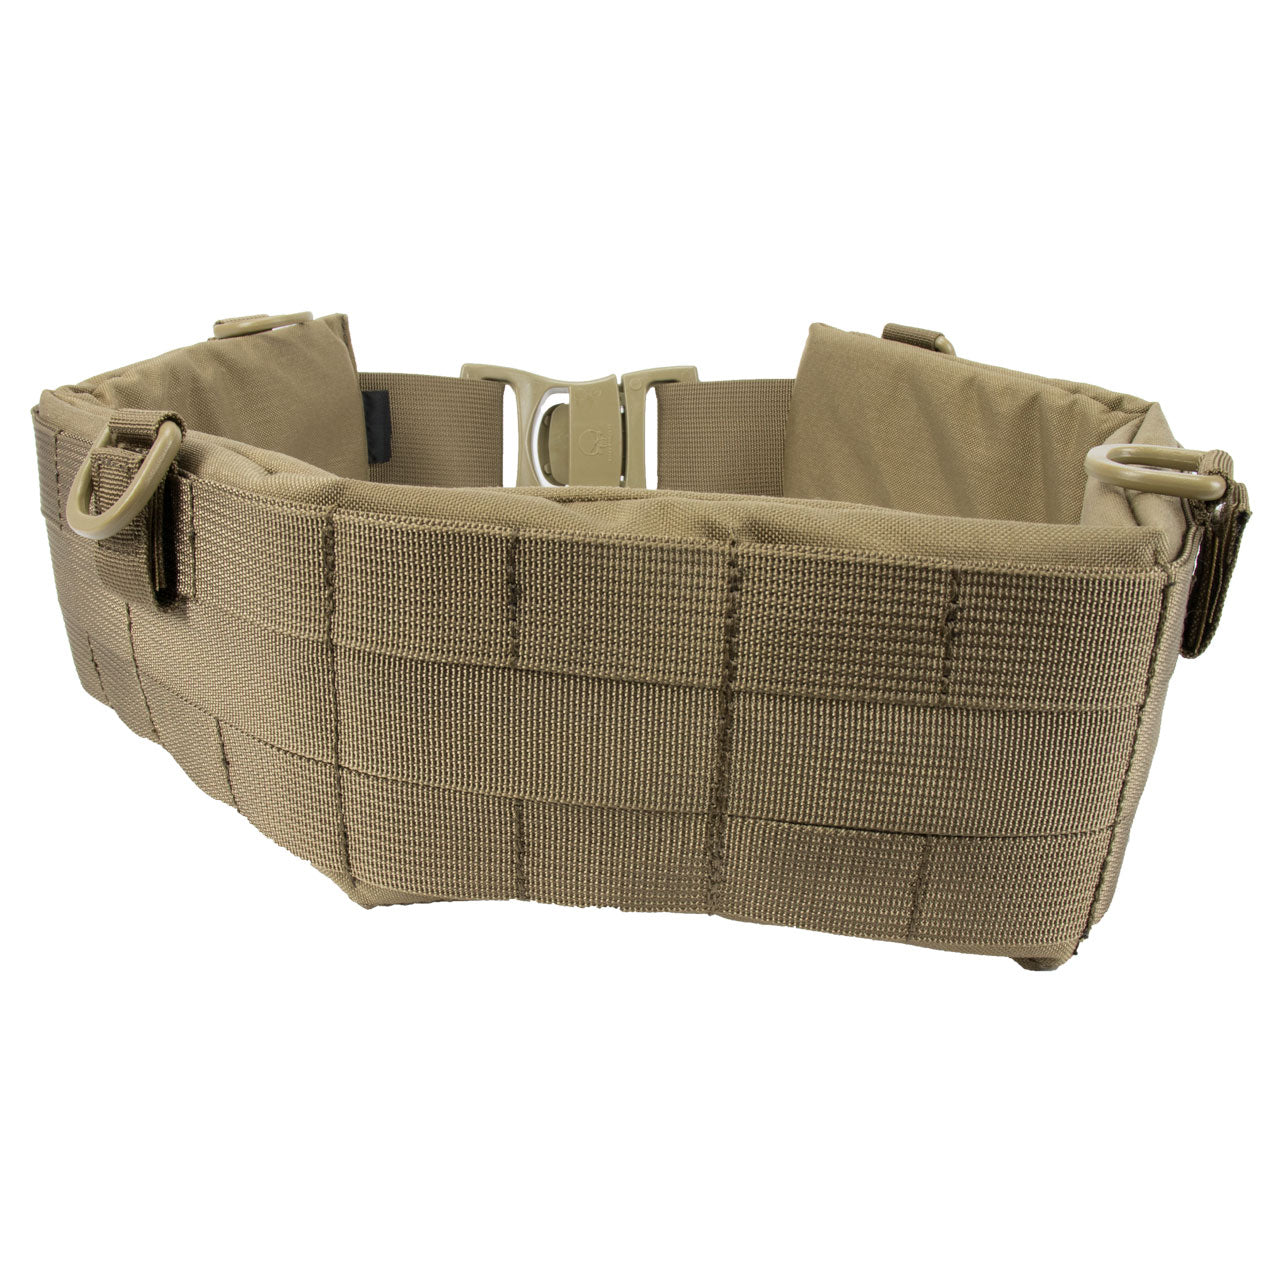 Emerson Tactical MOLLE / PALS Style Padded Patrol Battle